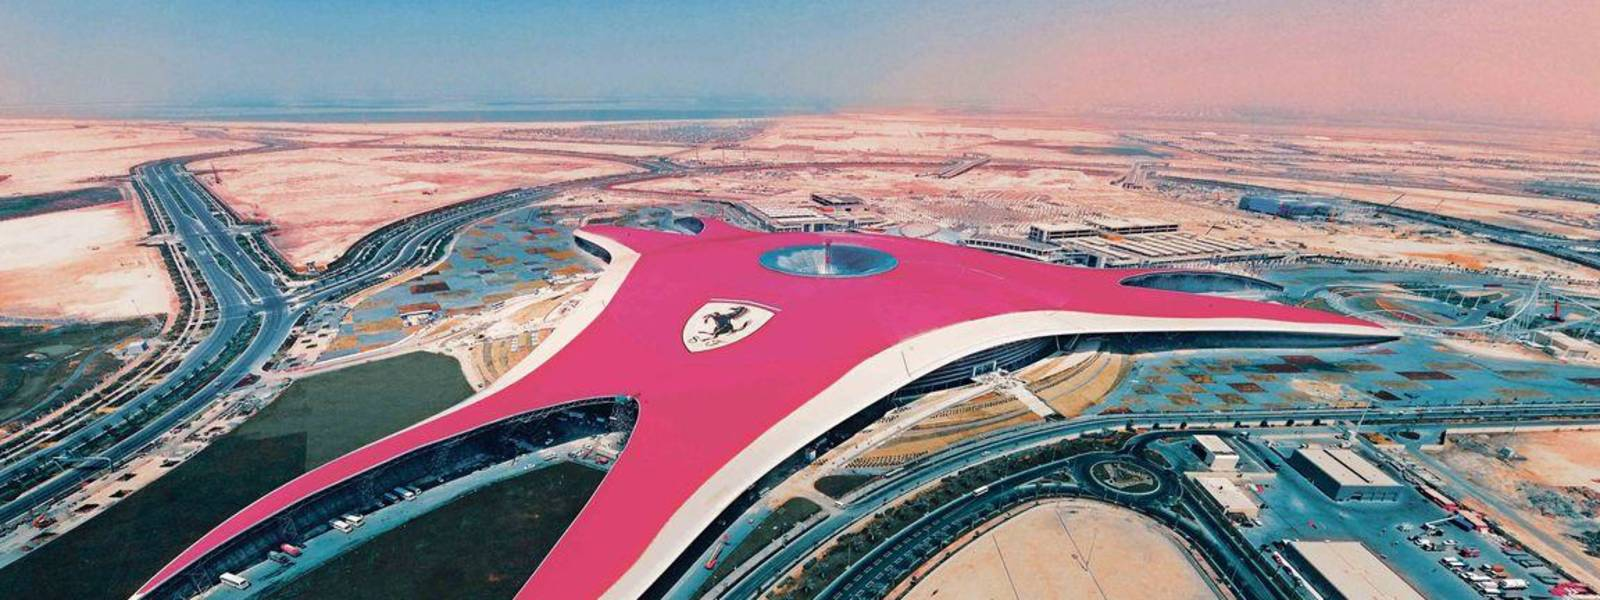 a train is parked on the beach with Ferrari World Abu Dhabi in the background